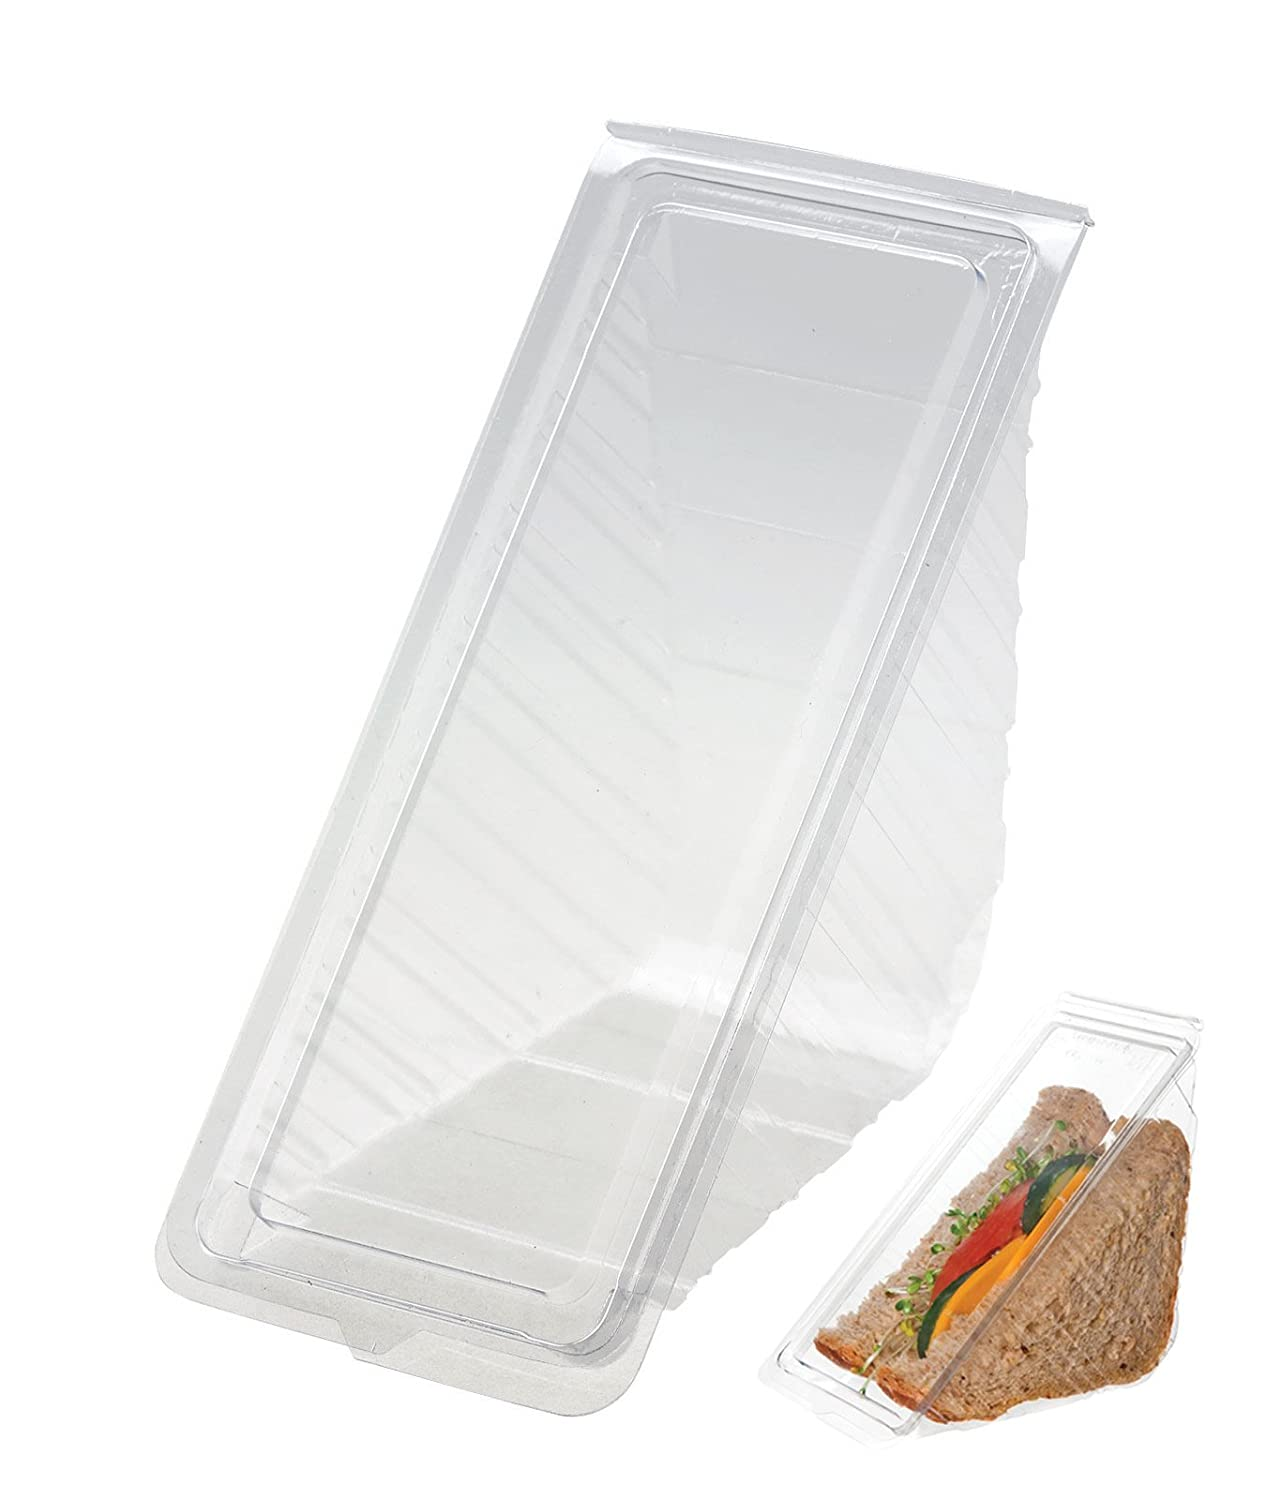 75 x Deep Fill Sandwich / Lunch / Party Wedge / Box with Hinged Lid (11 x 11 x 6cm) Swoosh Supplies